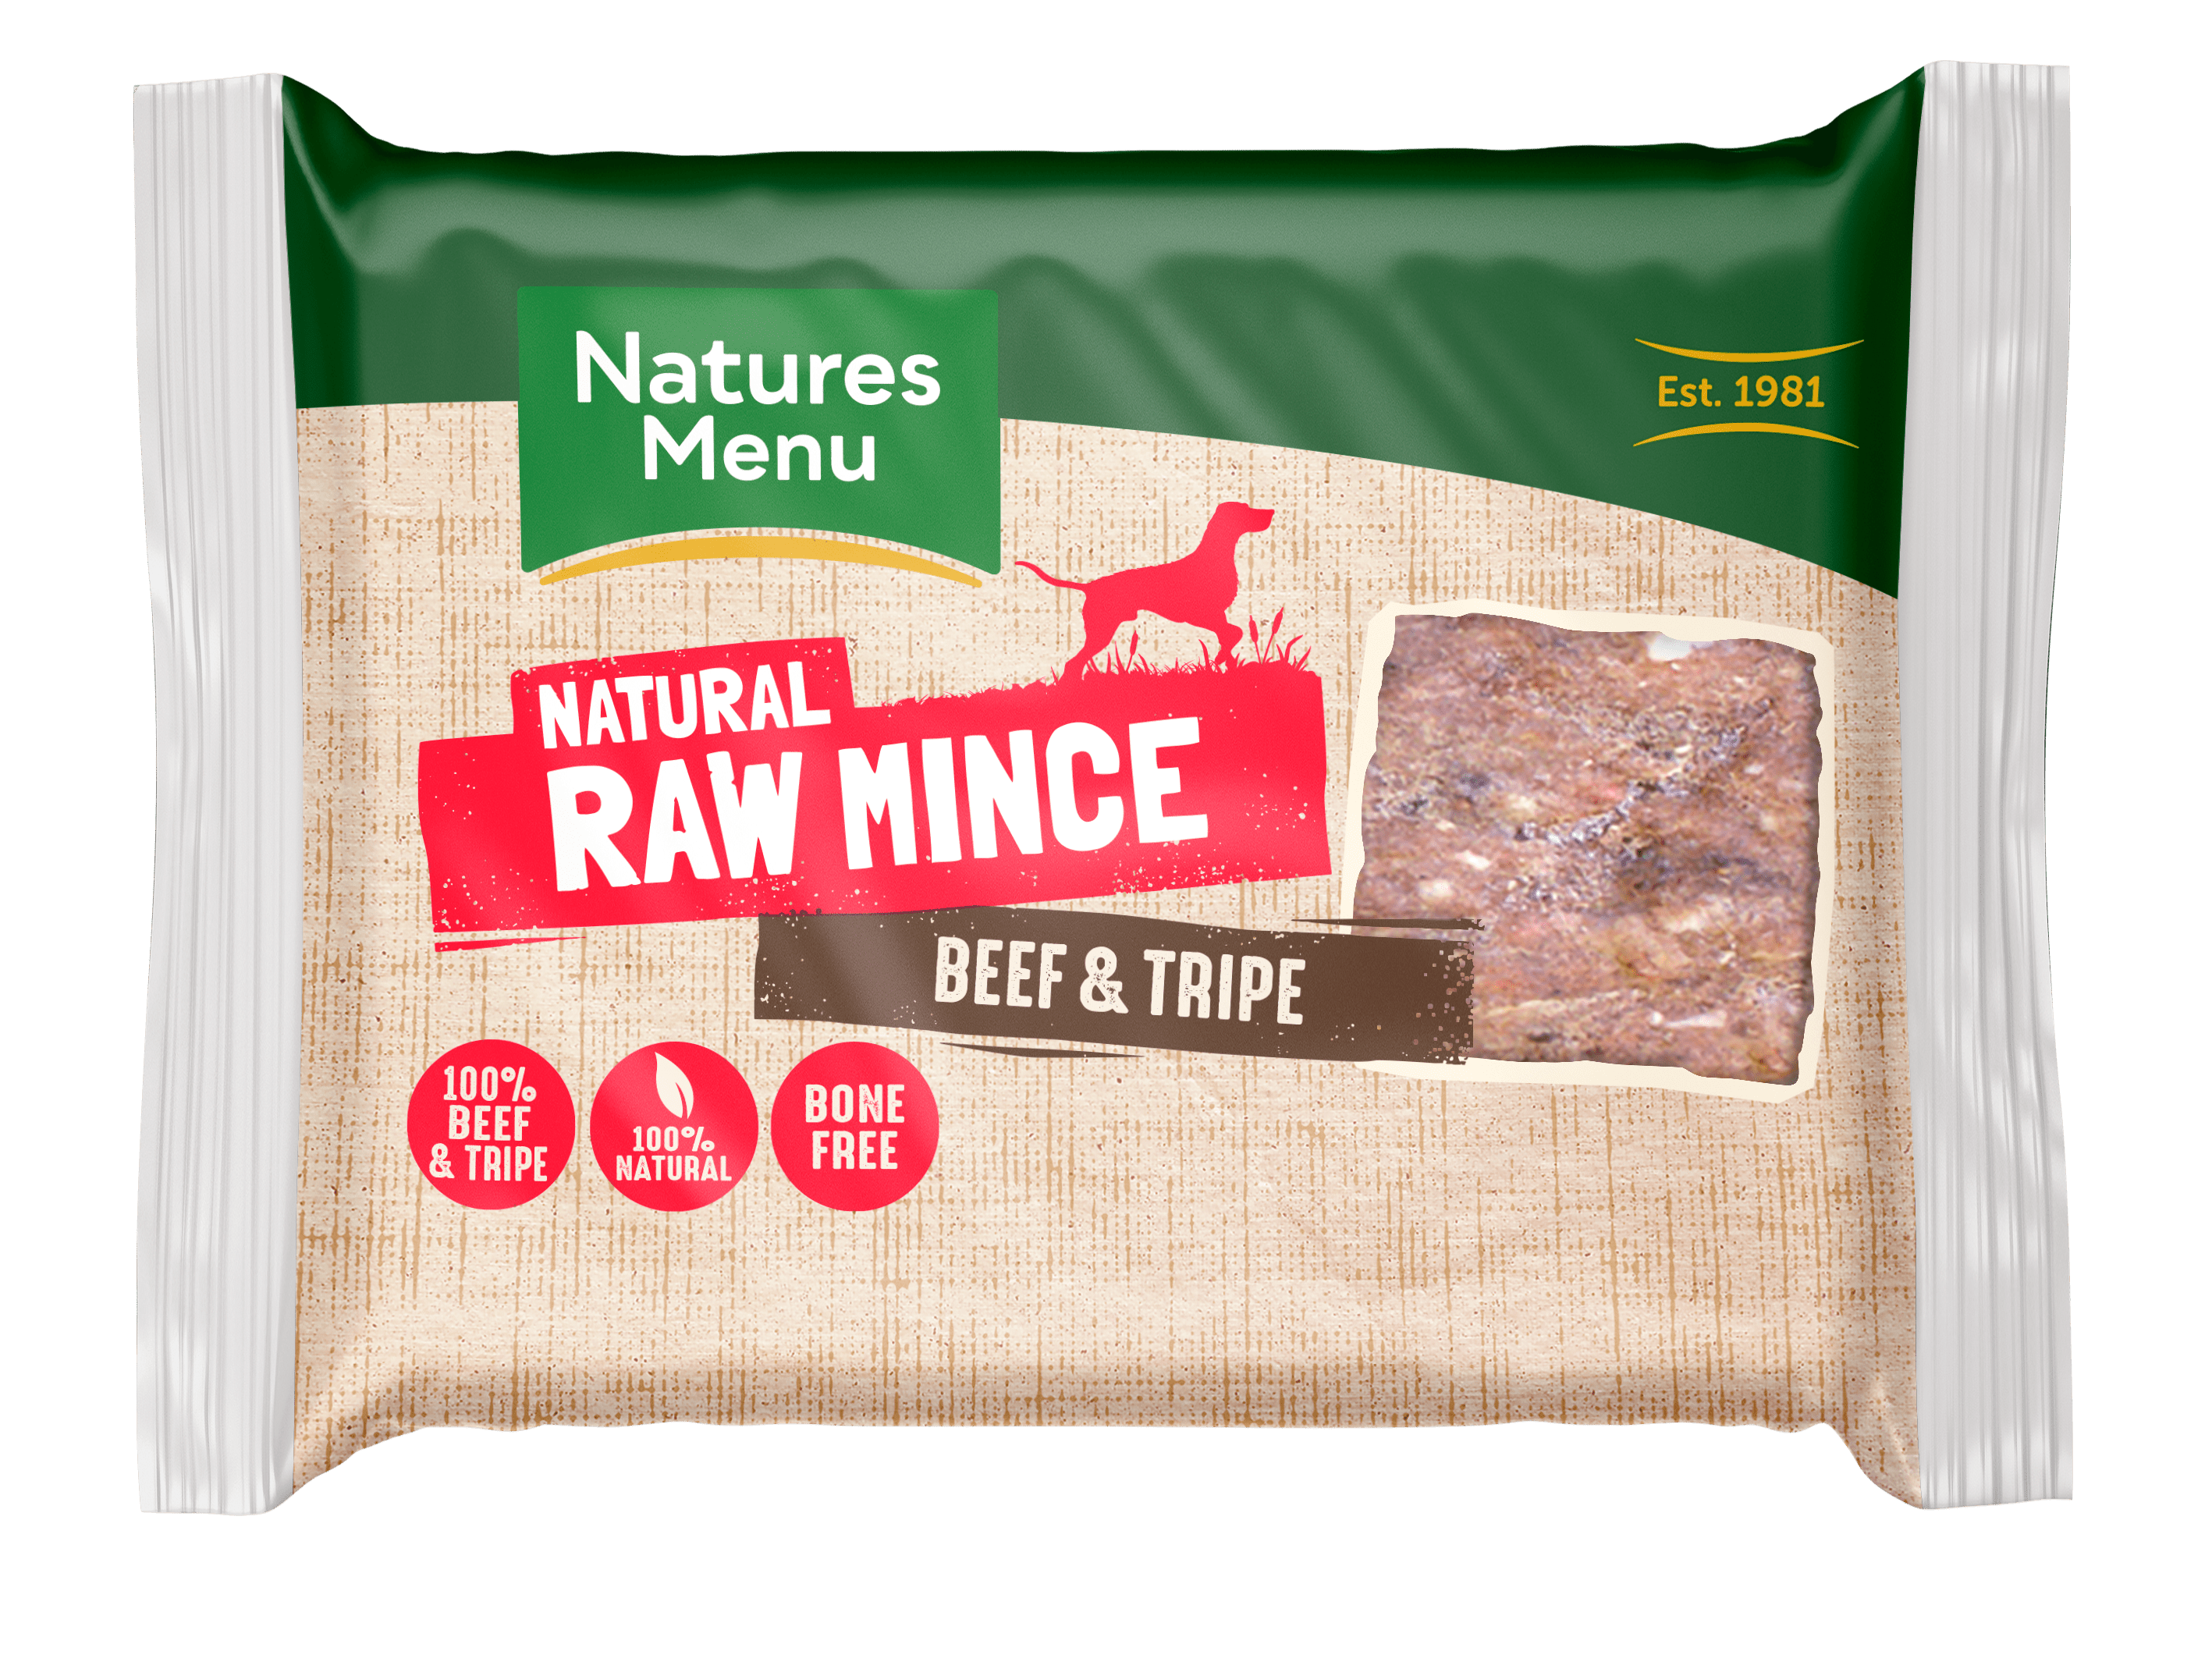 Natures Menu Beef & Tripe Block 400g Front of Pack